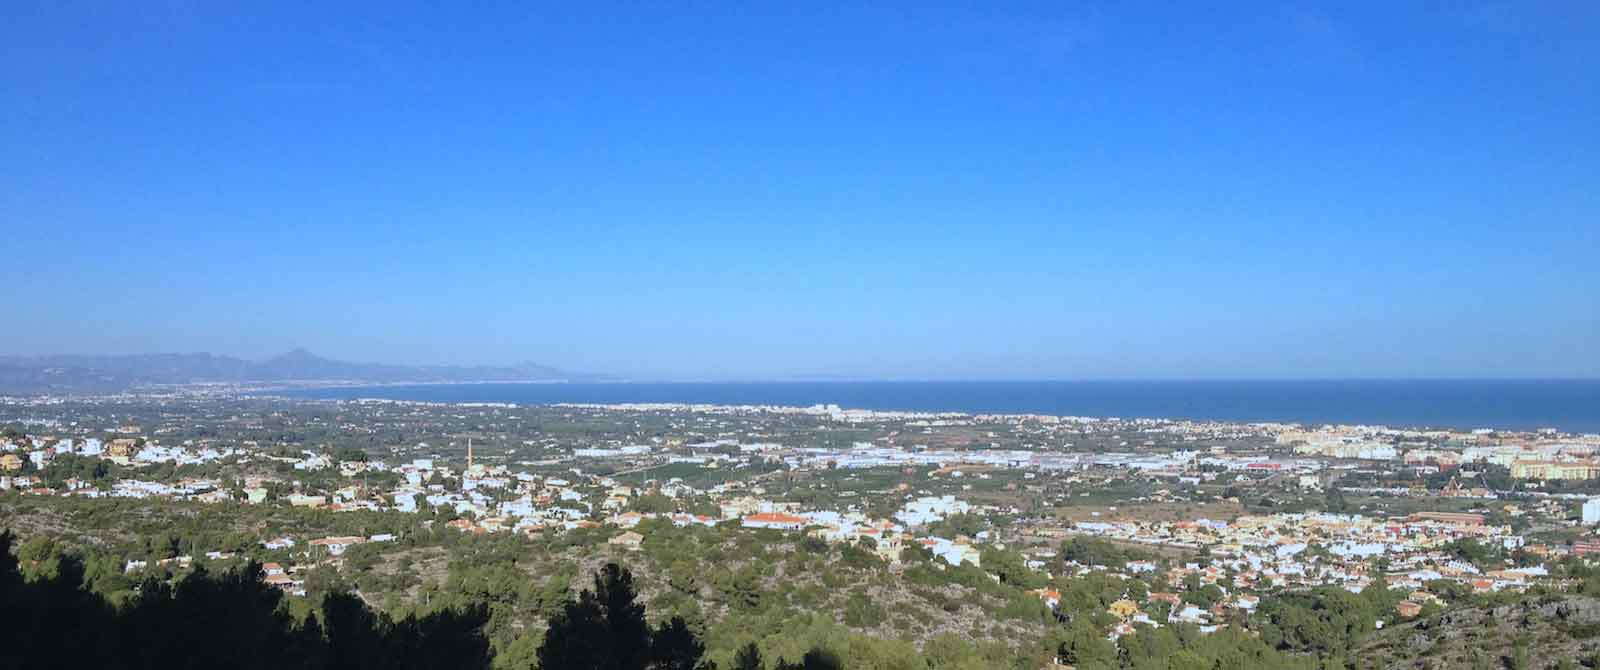 Panorama of coast and blue sky in Valencia